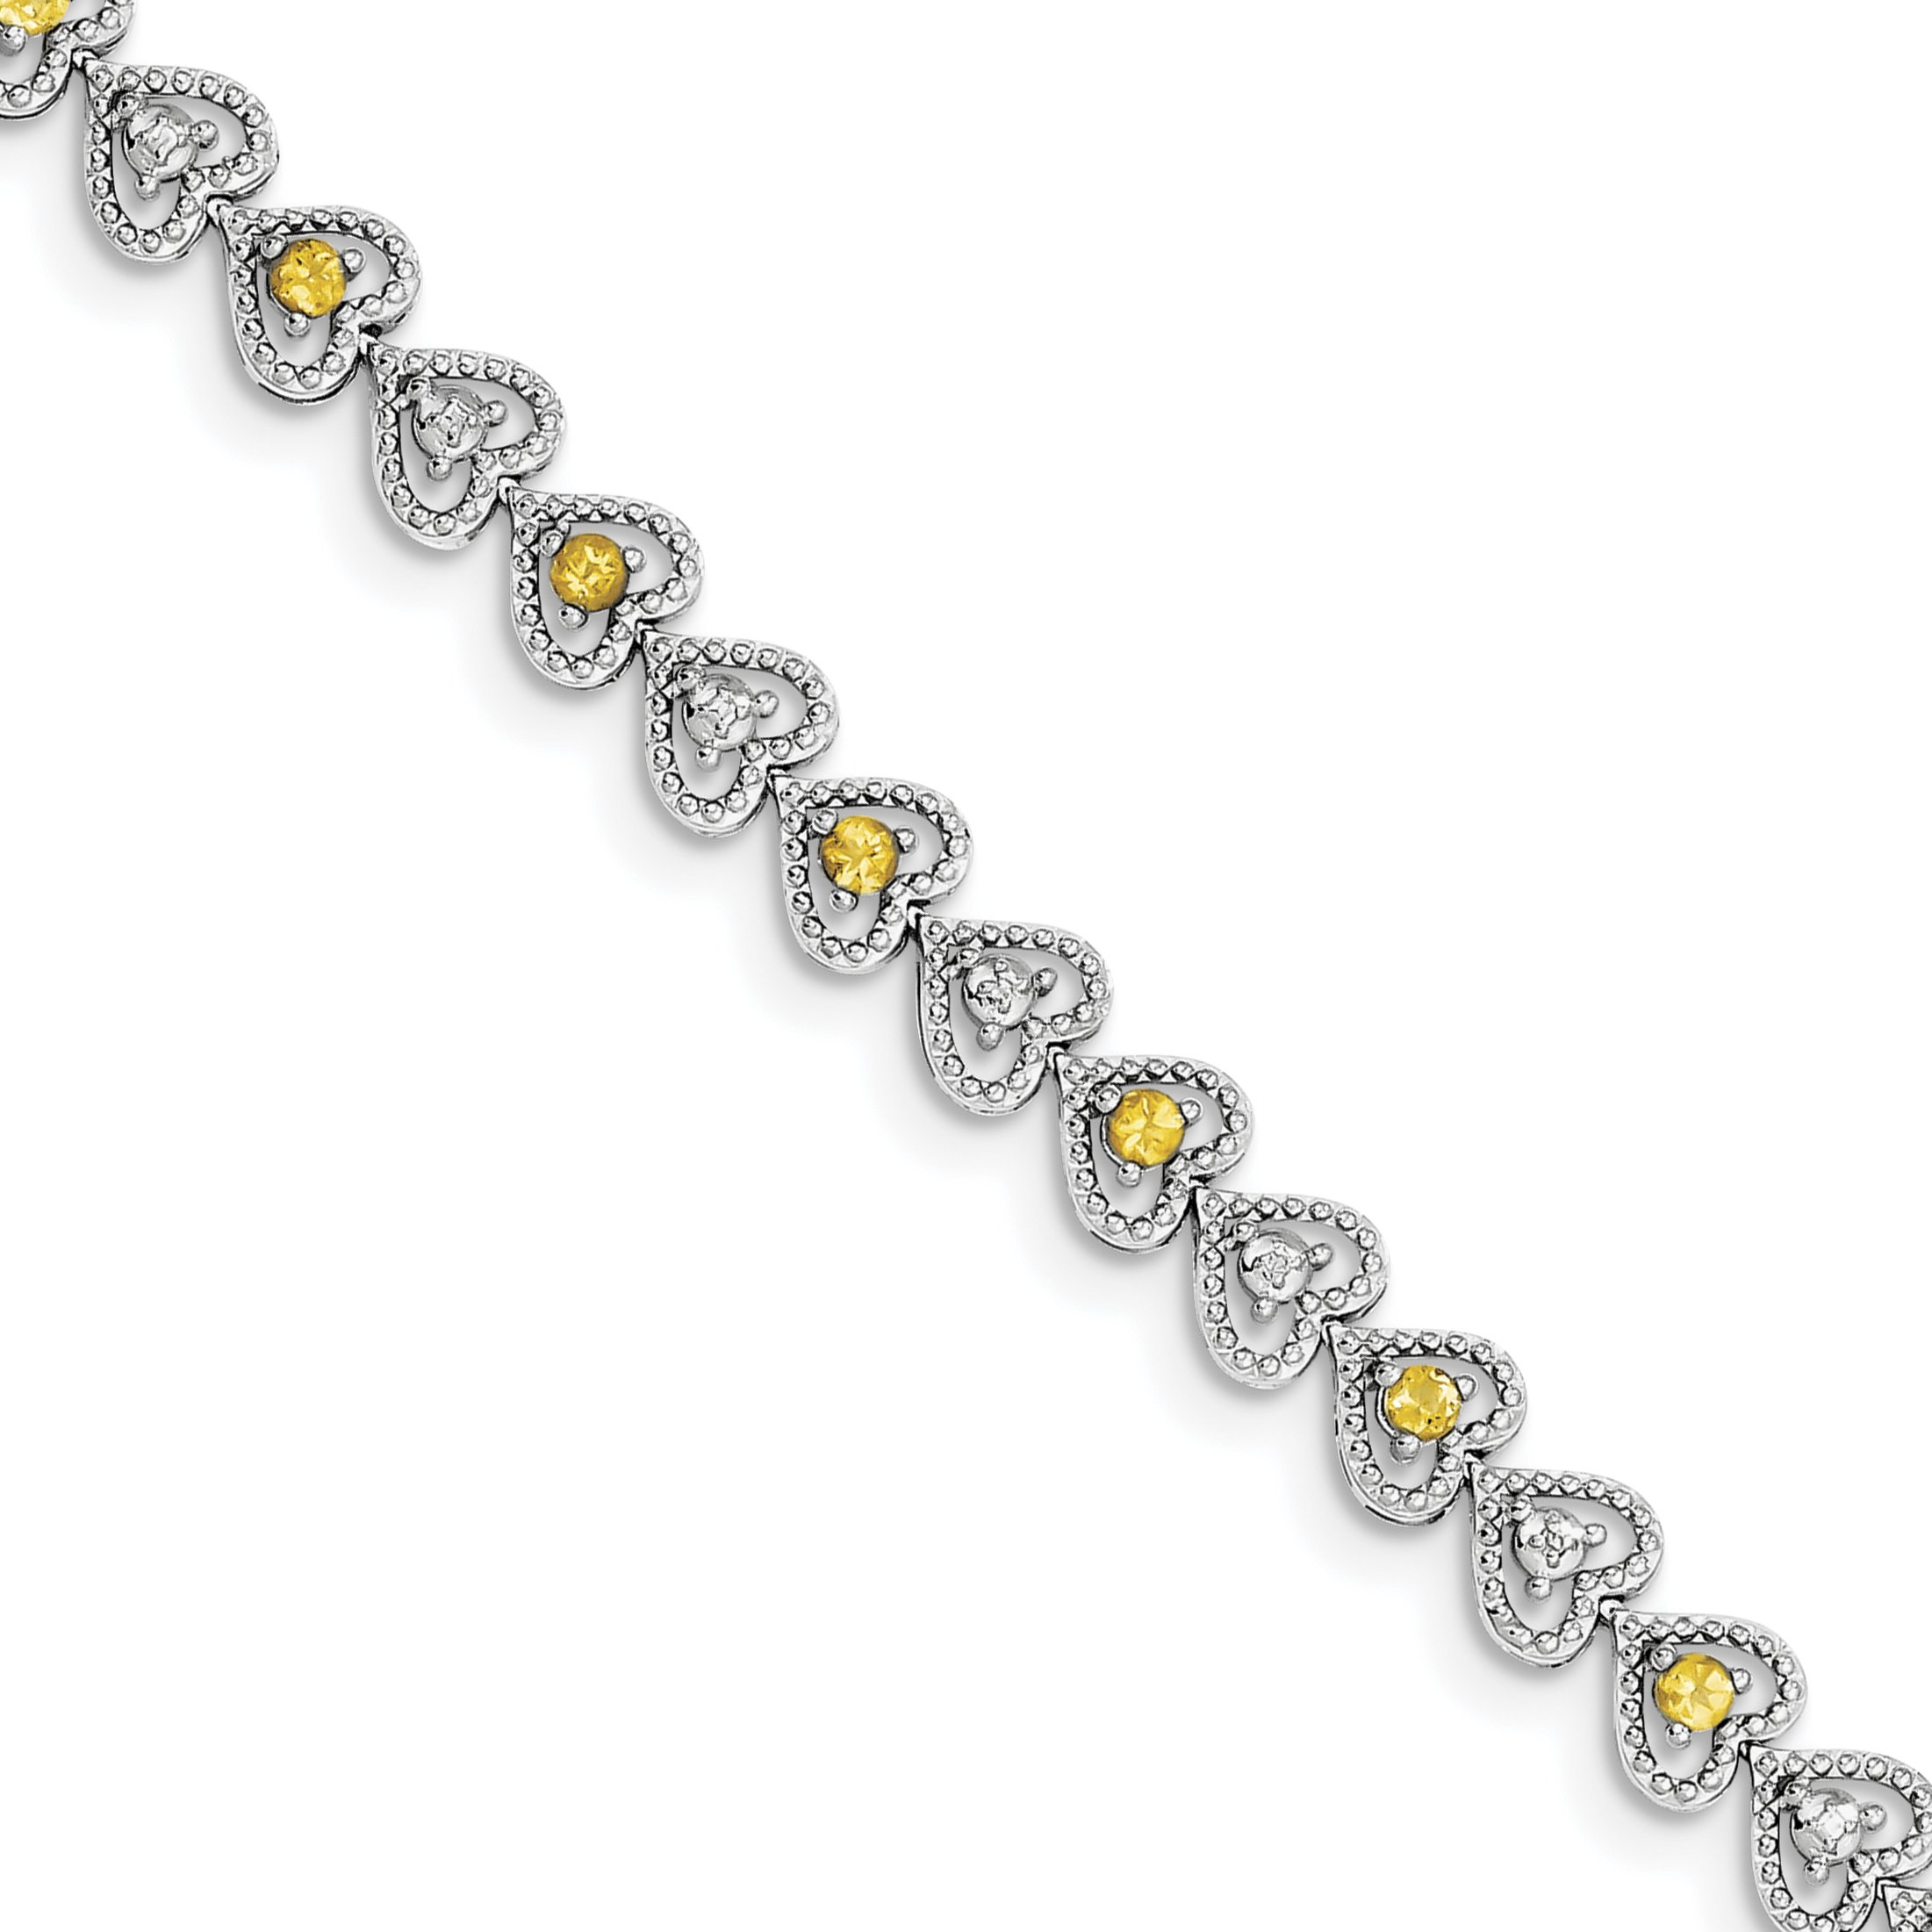 ICE CARATS 925 Sterling Silver Yellow Citrine Diamond Bracelet 7 Inch /love Gemstone Fine Jewelry Gift Set For Women Heart by ICE CARATS